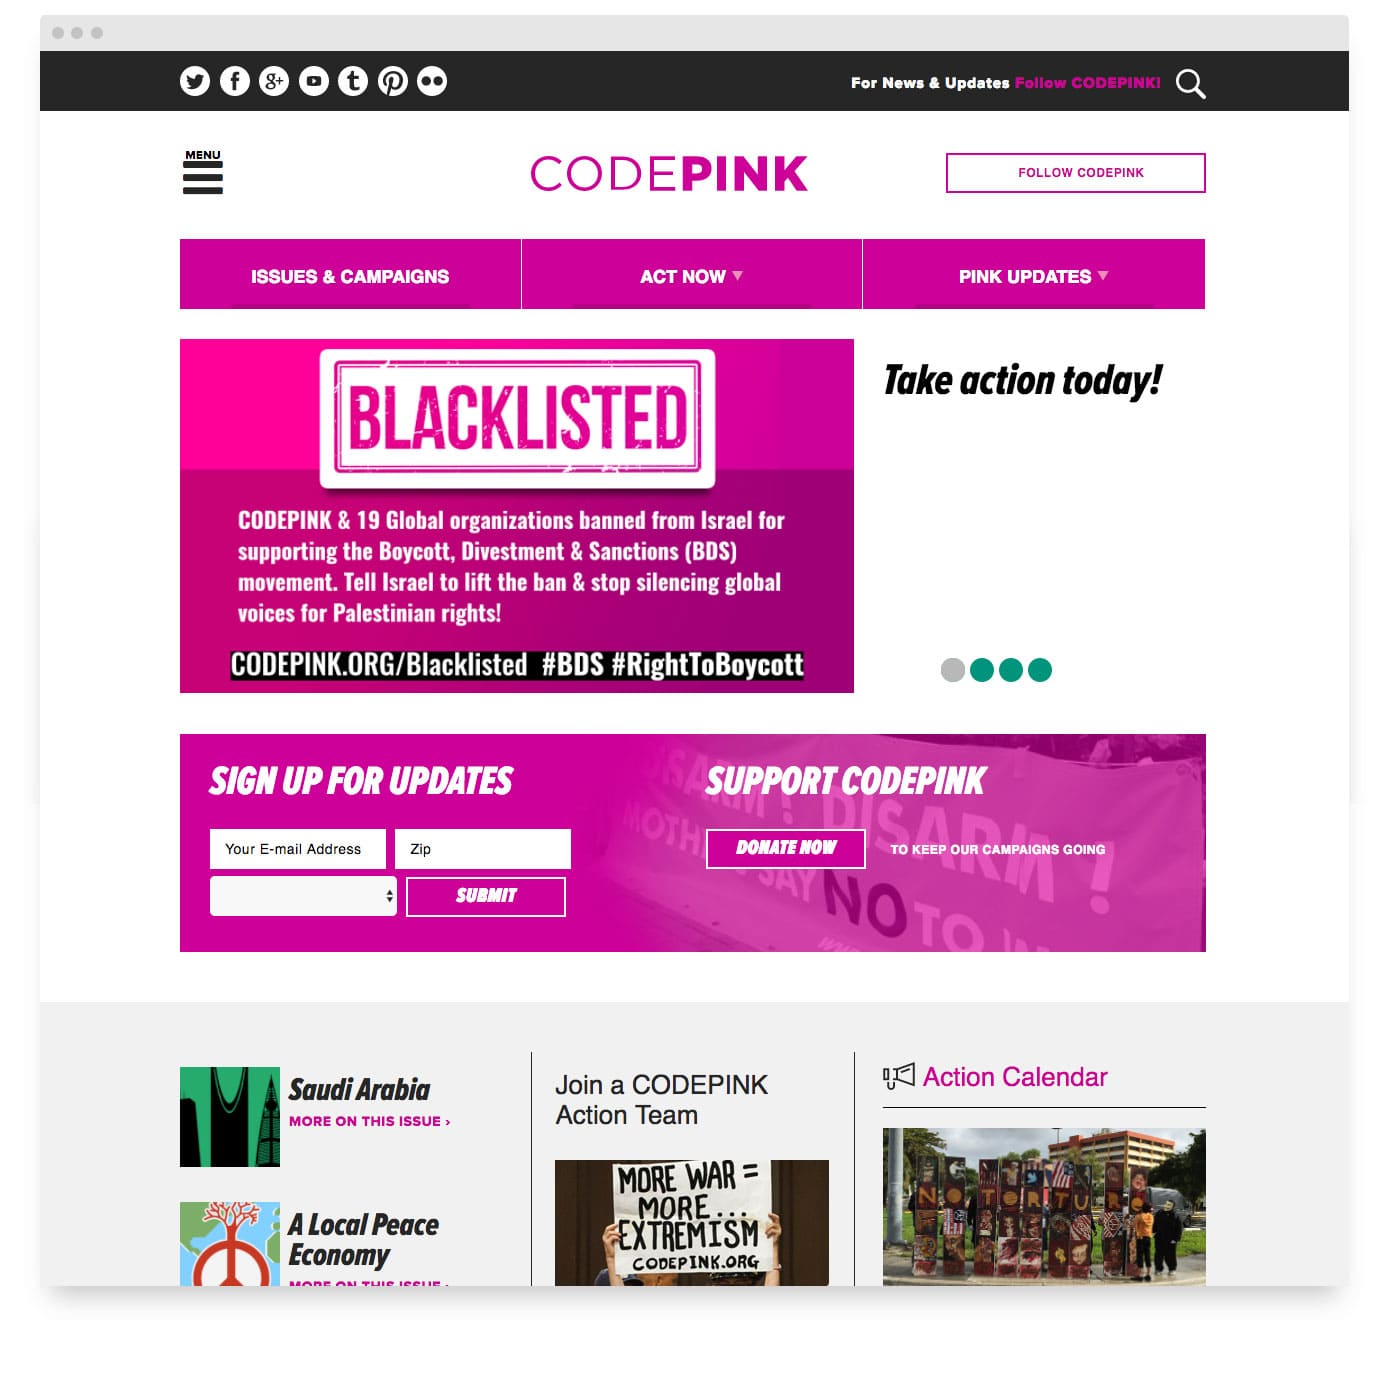 codepink-home-desktop-min.jpg